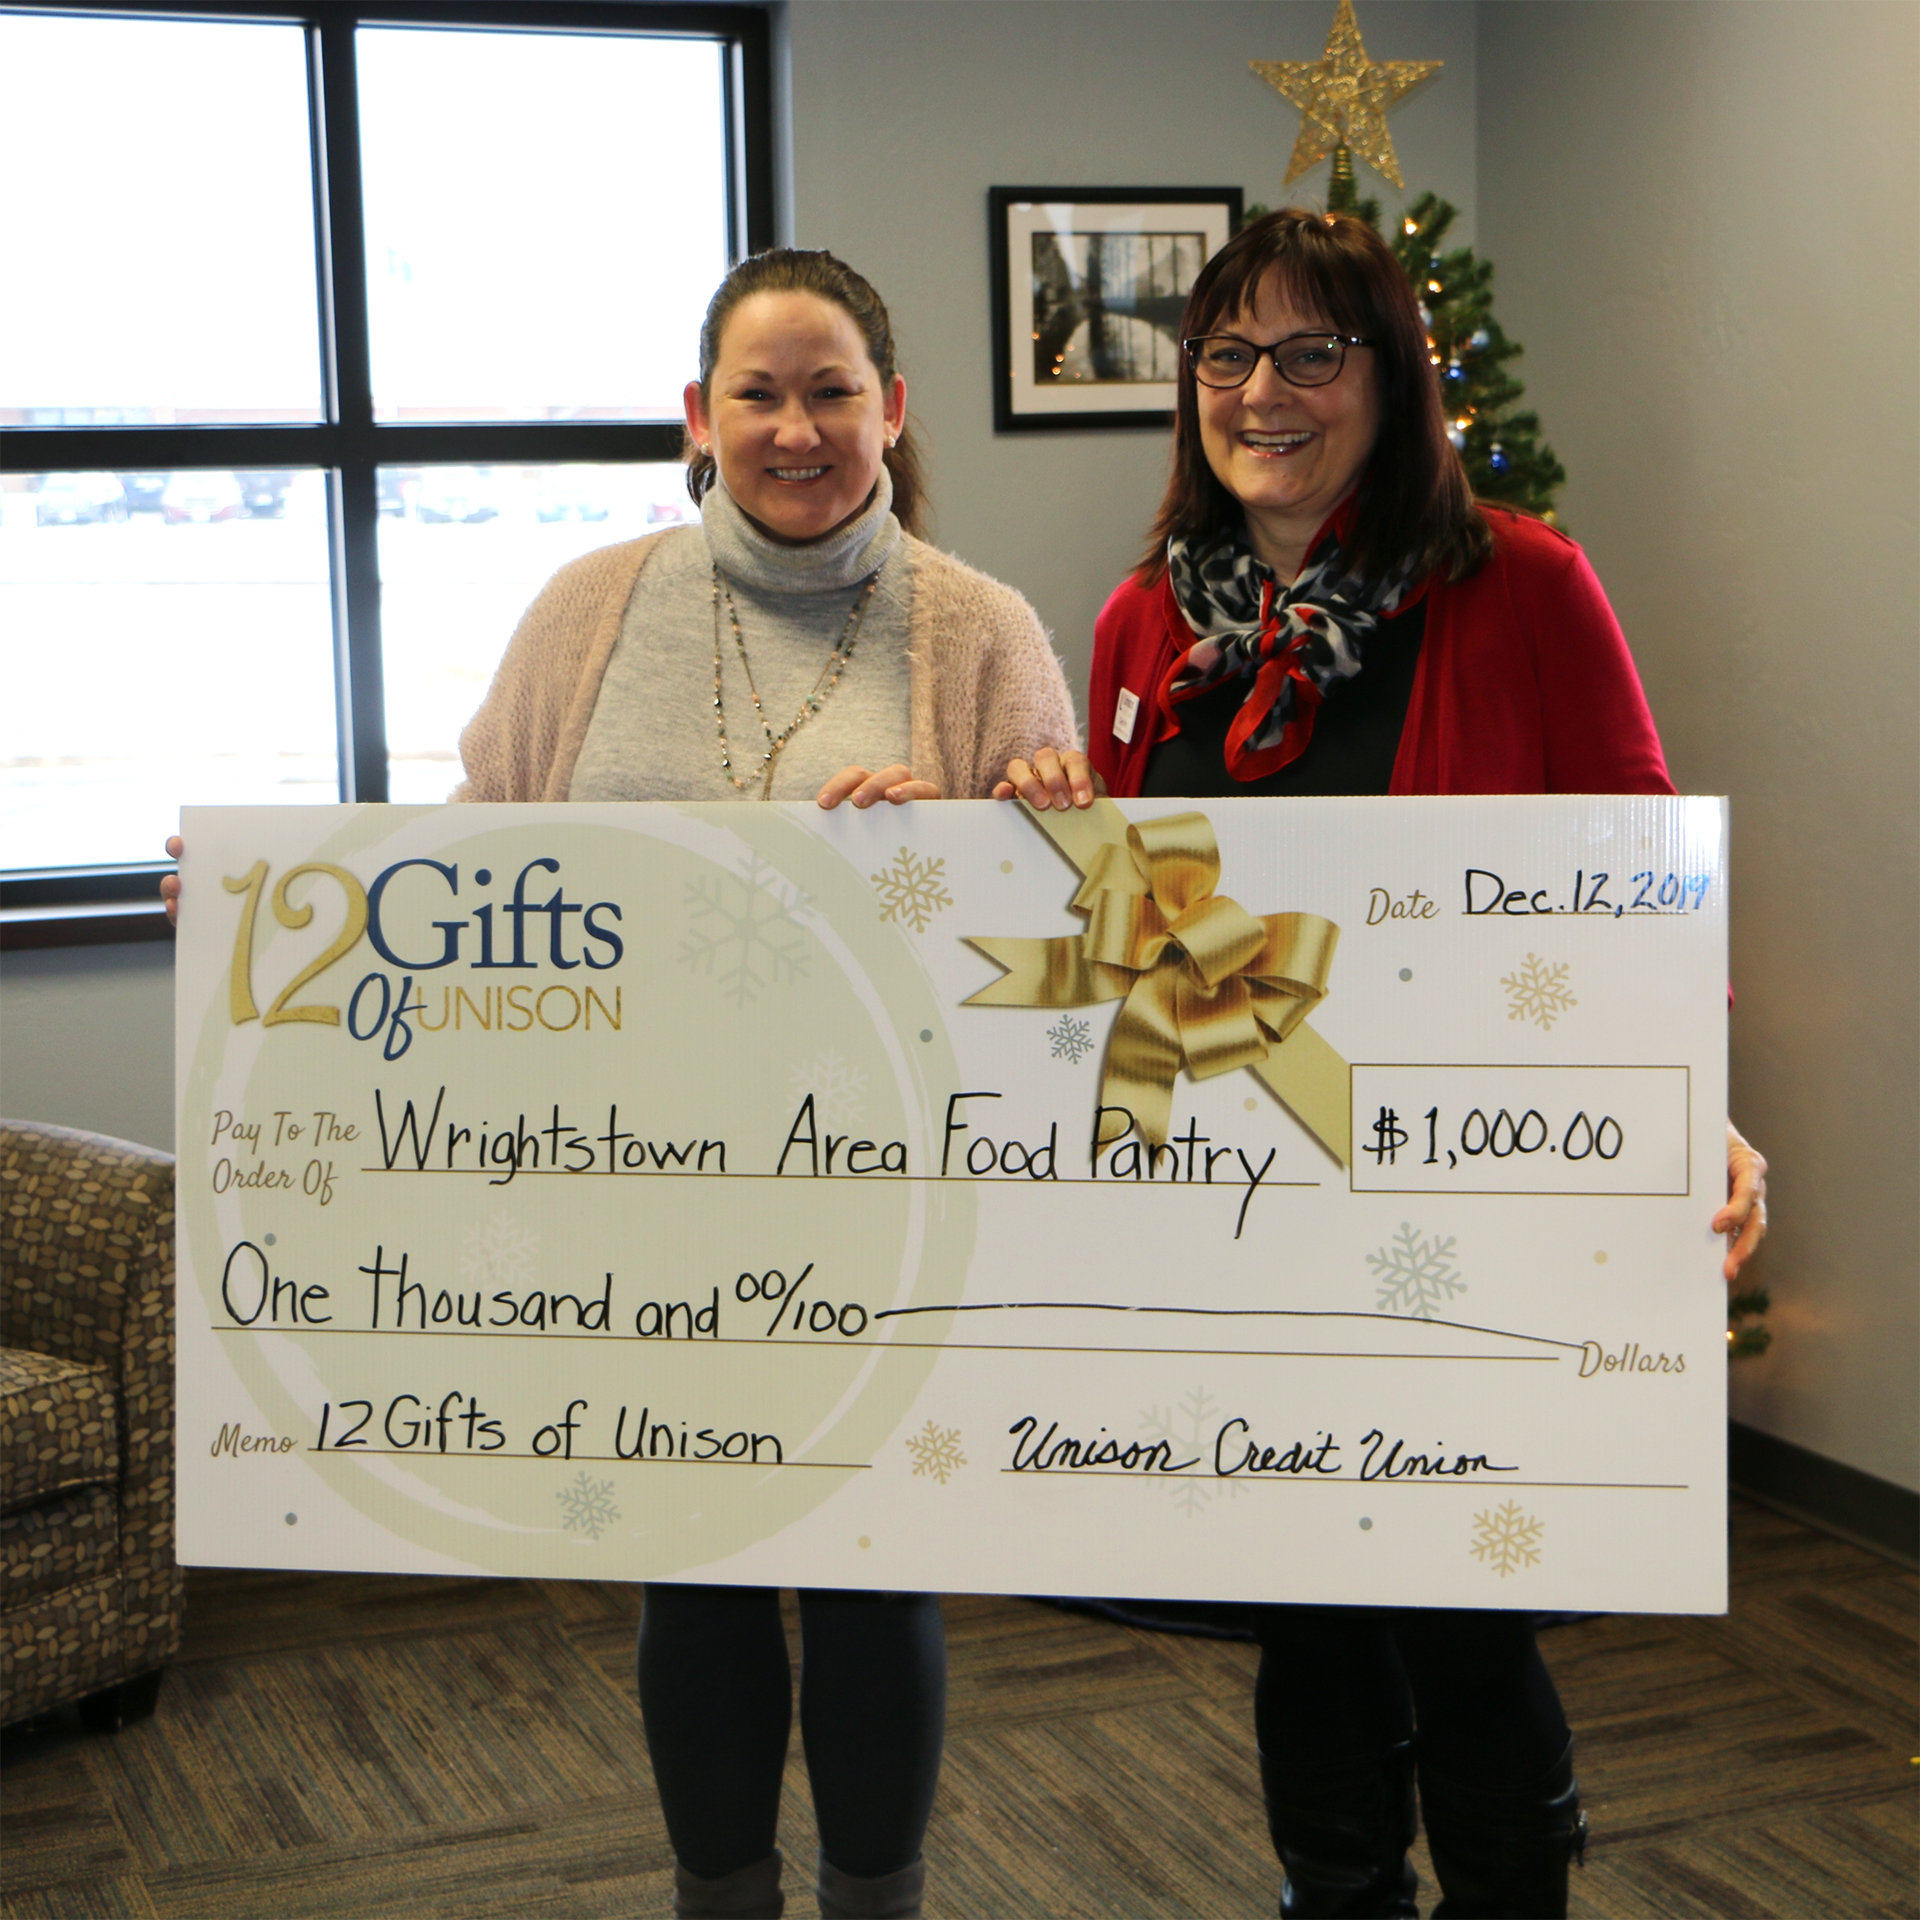 wrightstown food pantry donation from unison